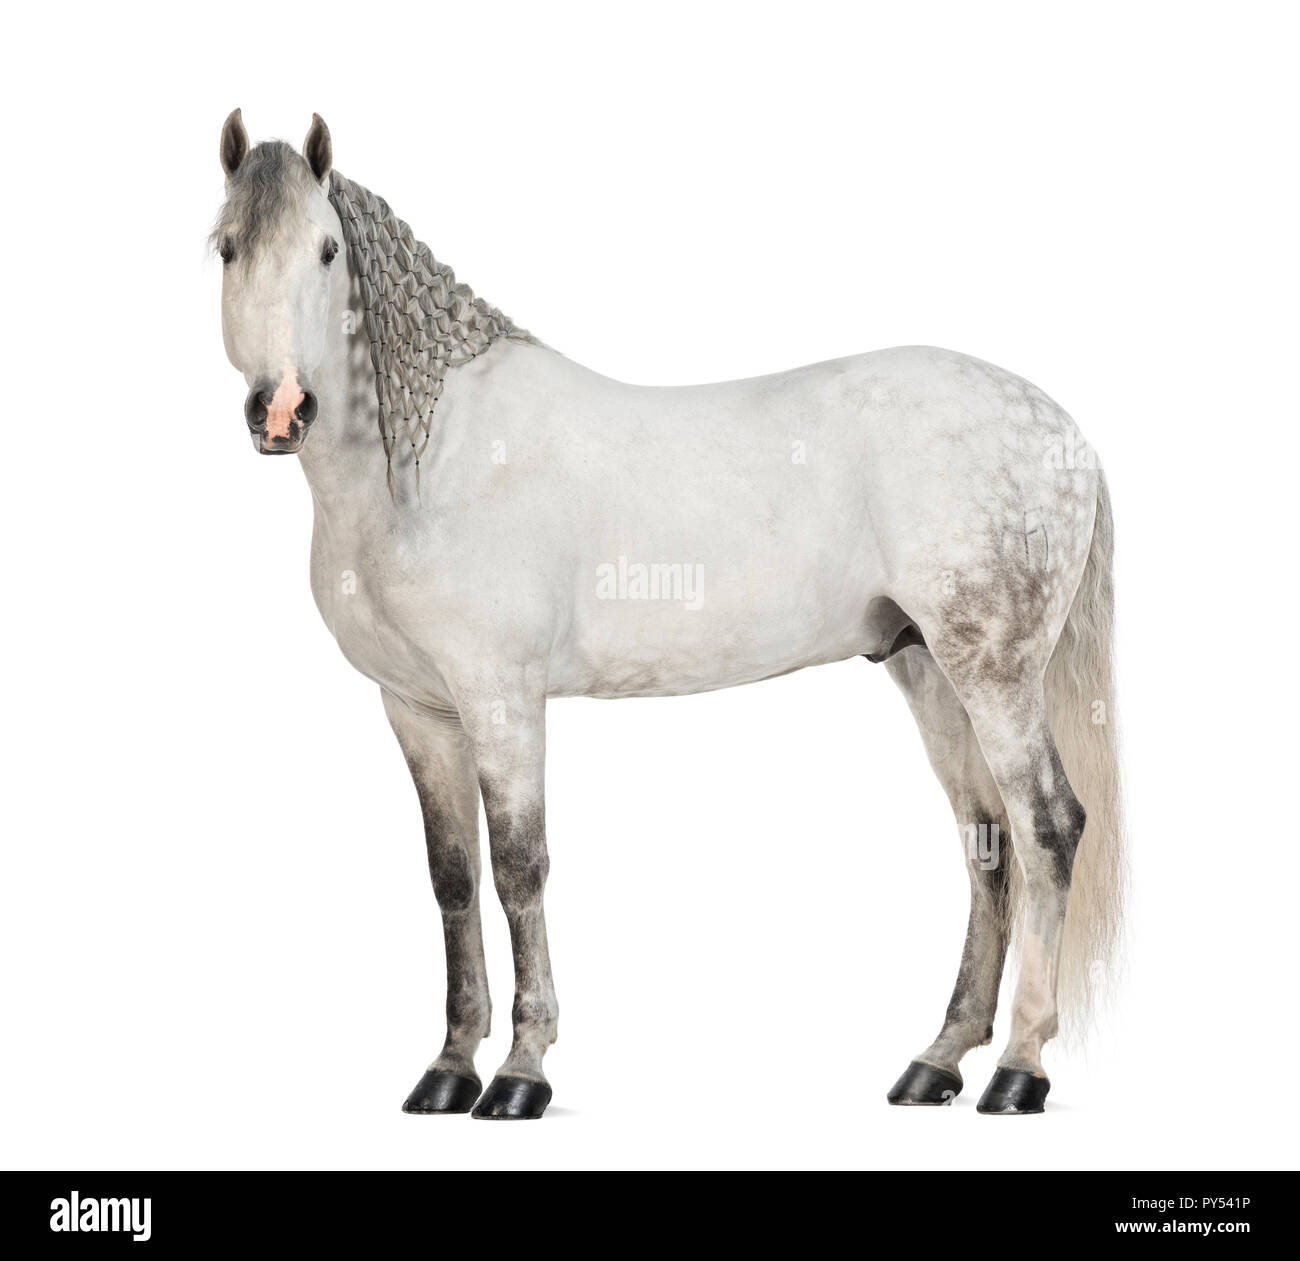 Side view of a Male Andalusian with plaited mane, 7 years old, also known as the Pure Spanish Horse or PRE, Stallion against white background - Stock Image